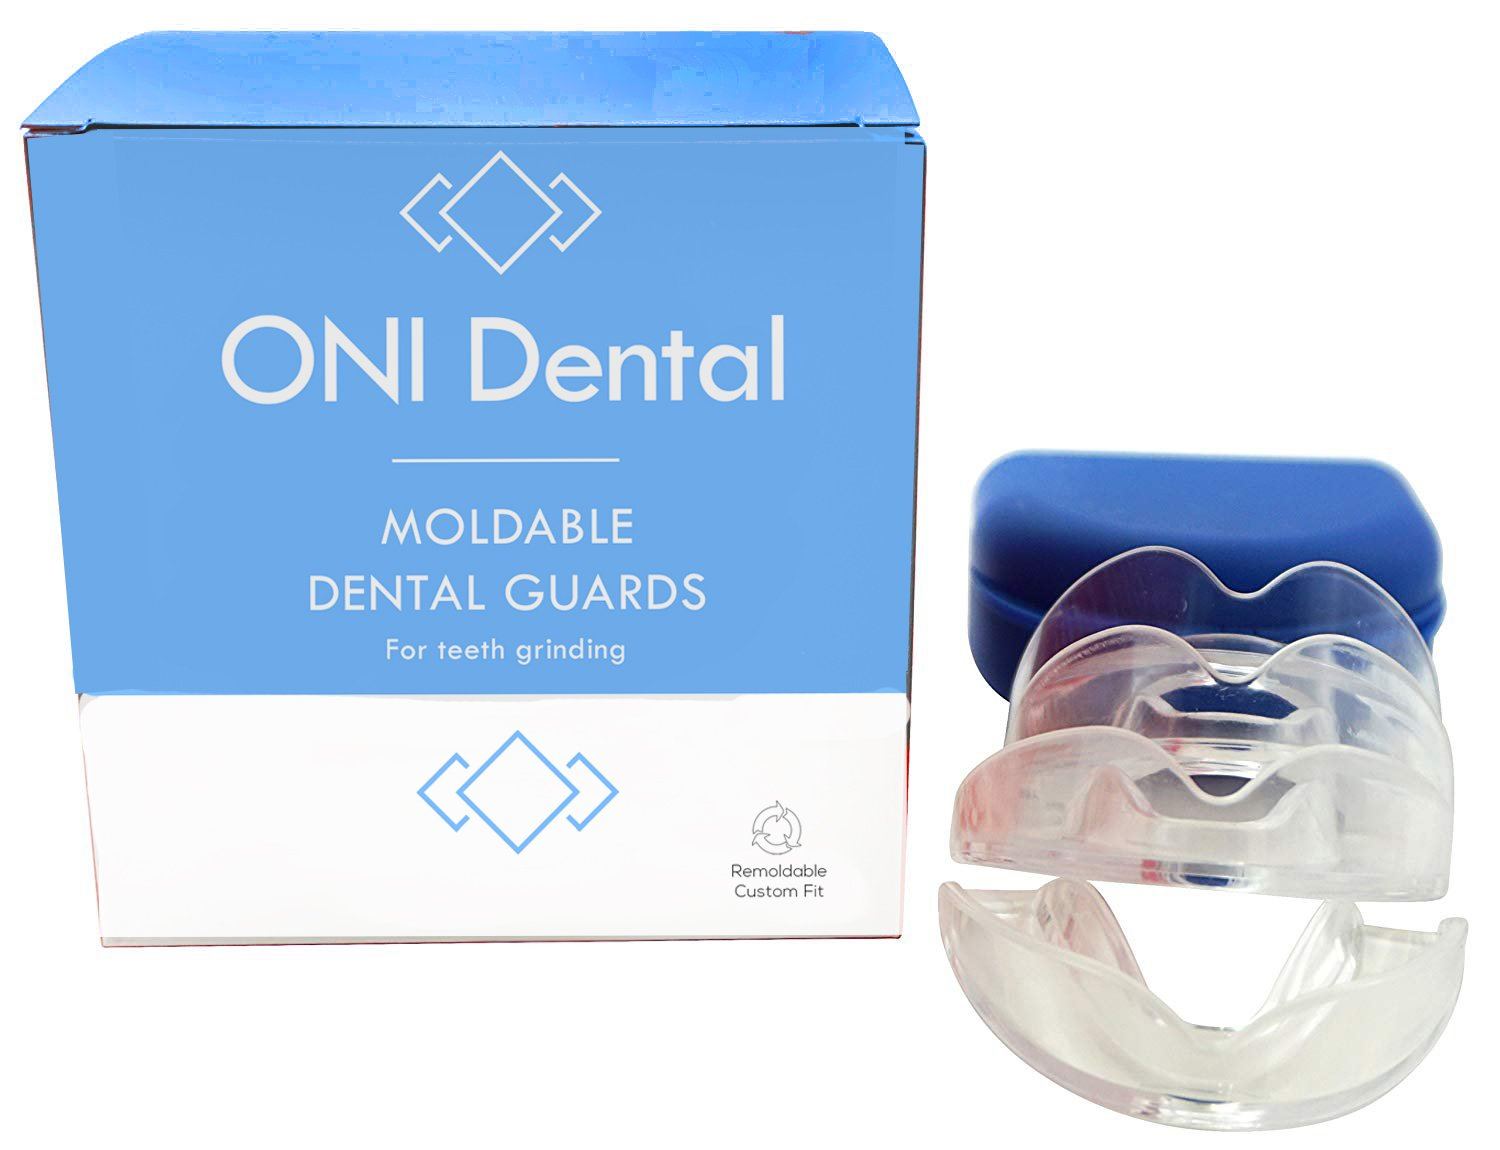 ONI Dental Guard BPA Free - Night Guards for Teeth Grinding, Athletic Mouth Guard, Teeth Whitening Tray - 4 Customizable trays - Made in USA Mouth guard for grinding teeth